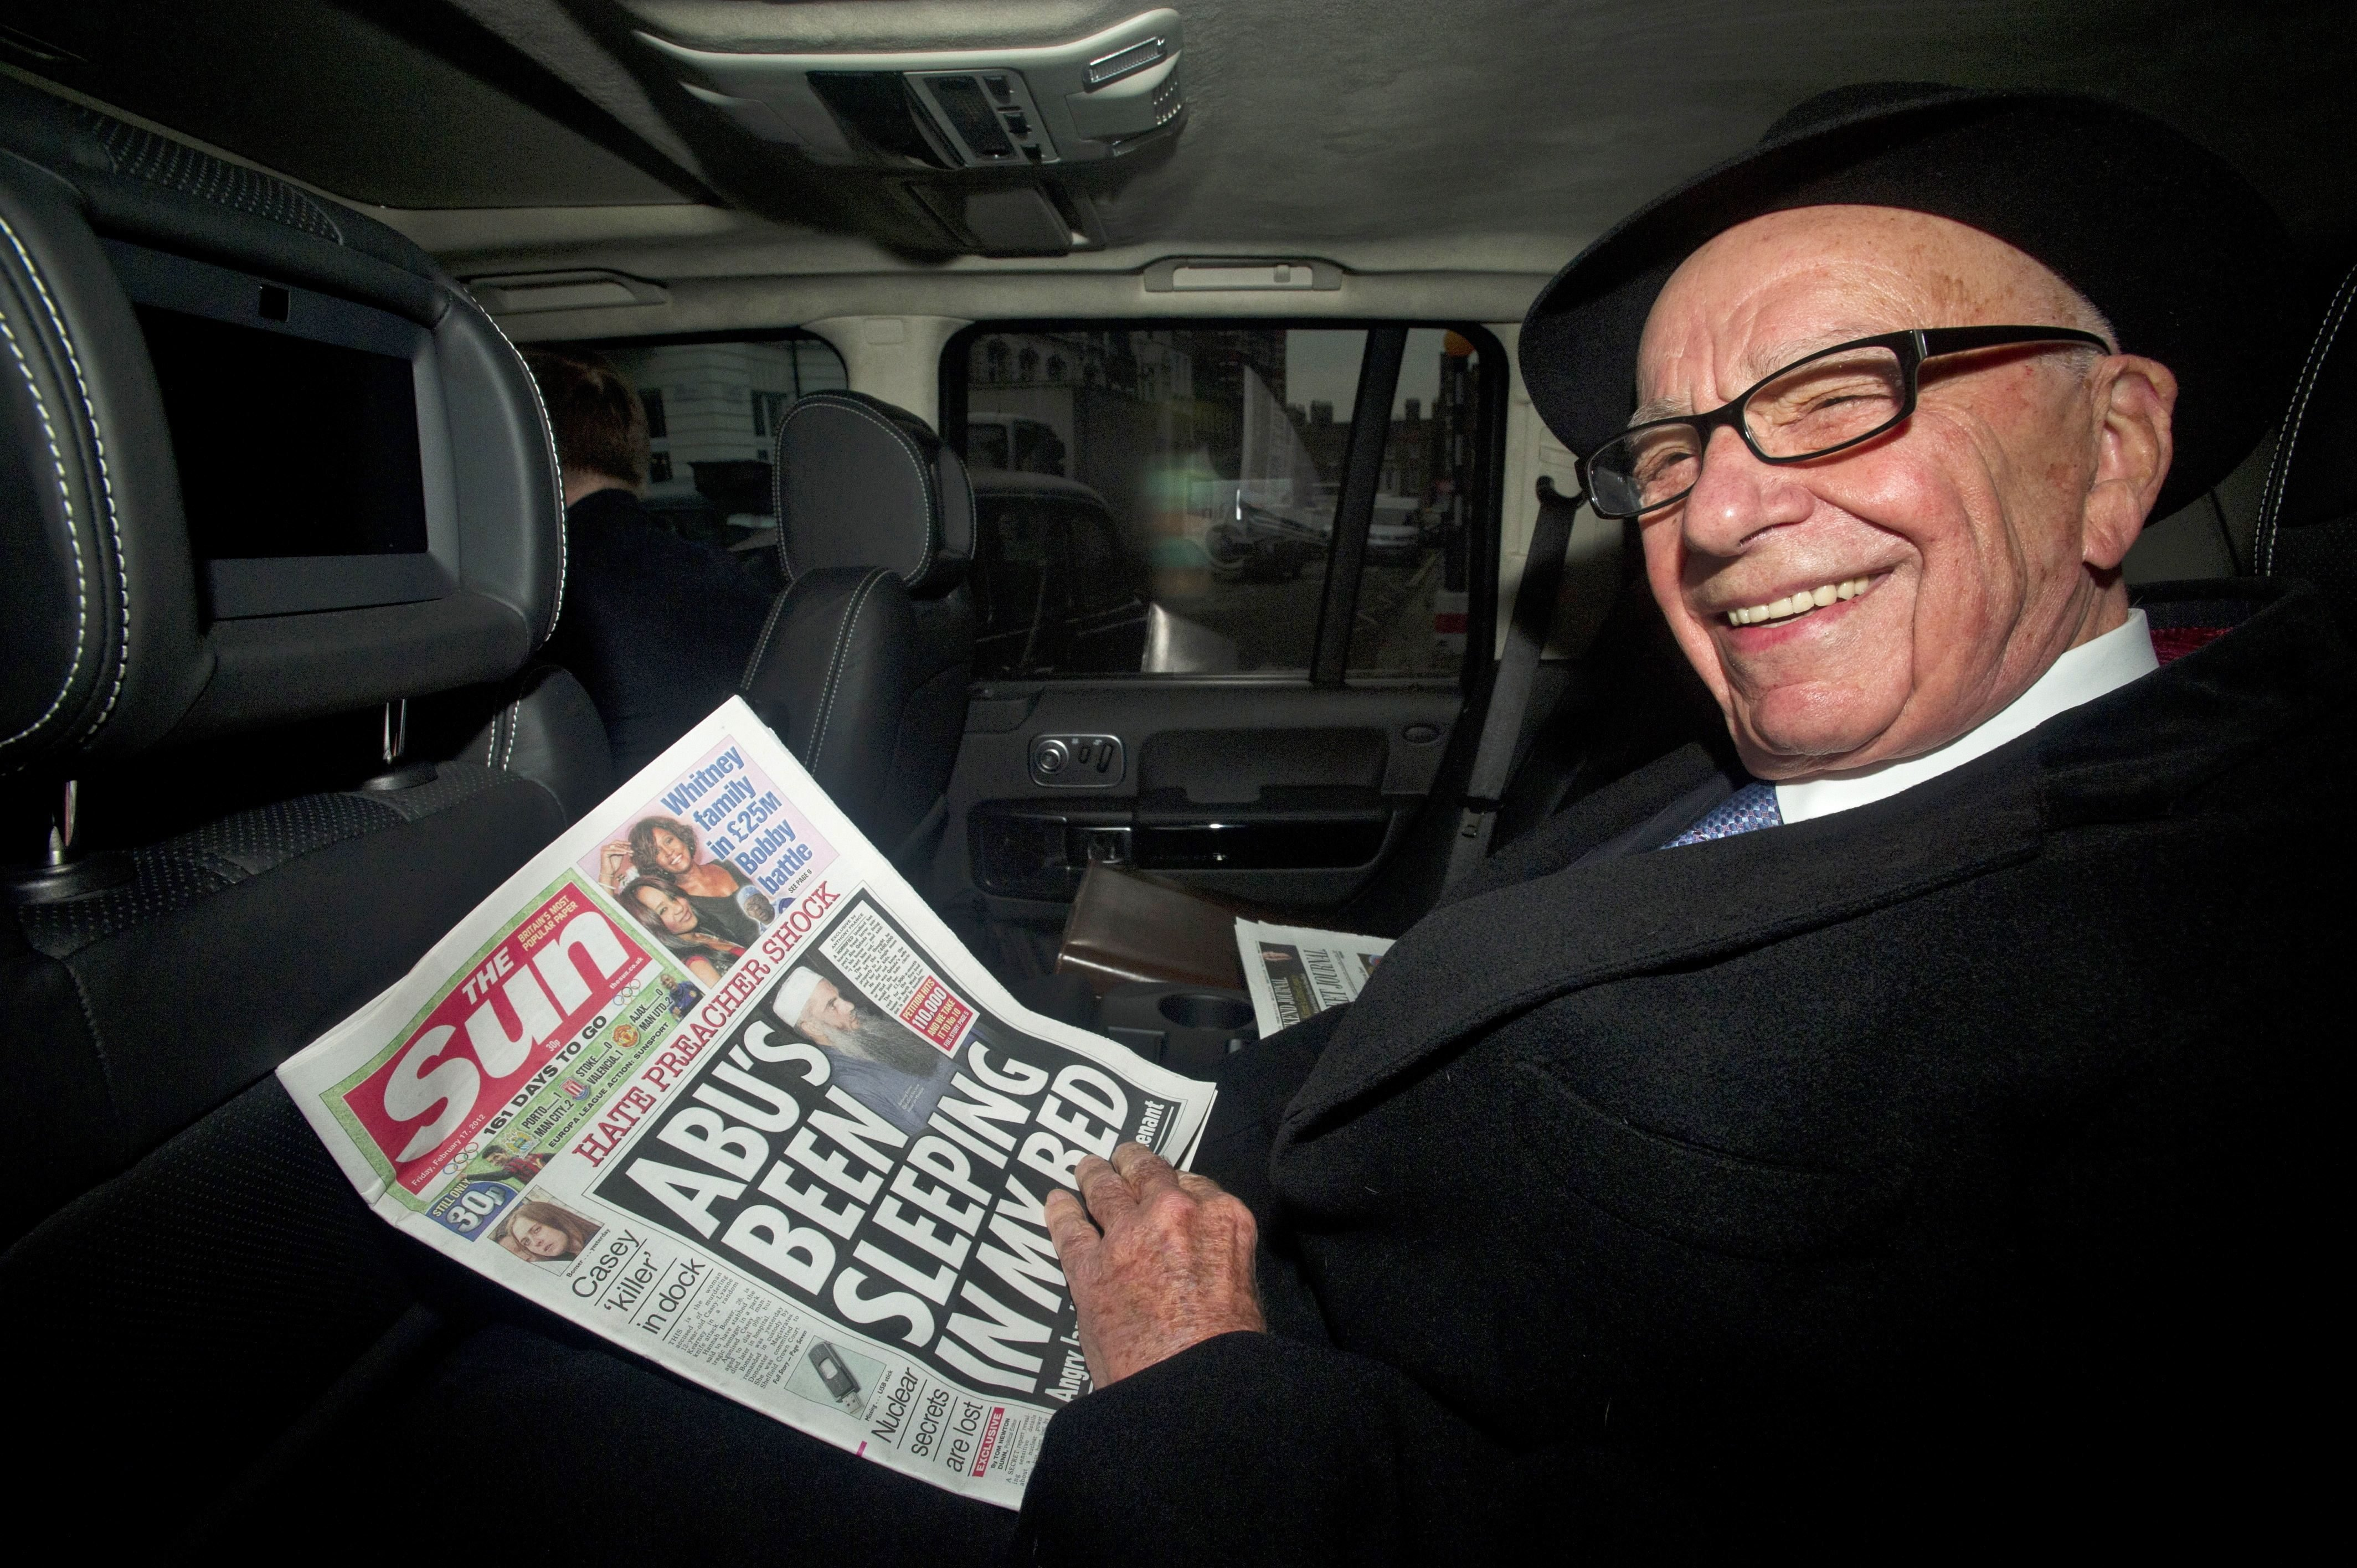 Mandatory Credit: Photo by Facundo Arrizabalaga/EPA/Shutterstock (7663478b) News Corp Chairman Rupert Murdoch Leaves His House in London Britain 17 February 2012 the 80-year-old Tycoon is to Address Staff at the Tabloid Sun Newspaper Following the Arrest of Five Senior Journalists in Connection with Corruption Allegations in an Initial Response to the Arrests Murdoch Dismissed Fresh Speculation Over the Future of the Sun a Tabloid with a Daily Circulation of 2 7 Million United Kingdom London Britain Media Murdoch - Feb 2012